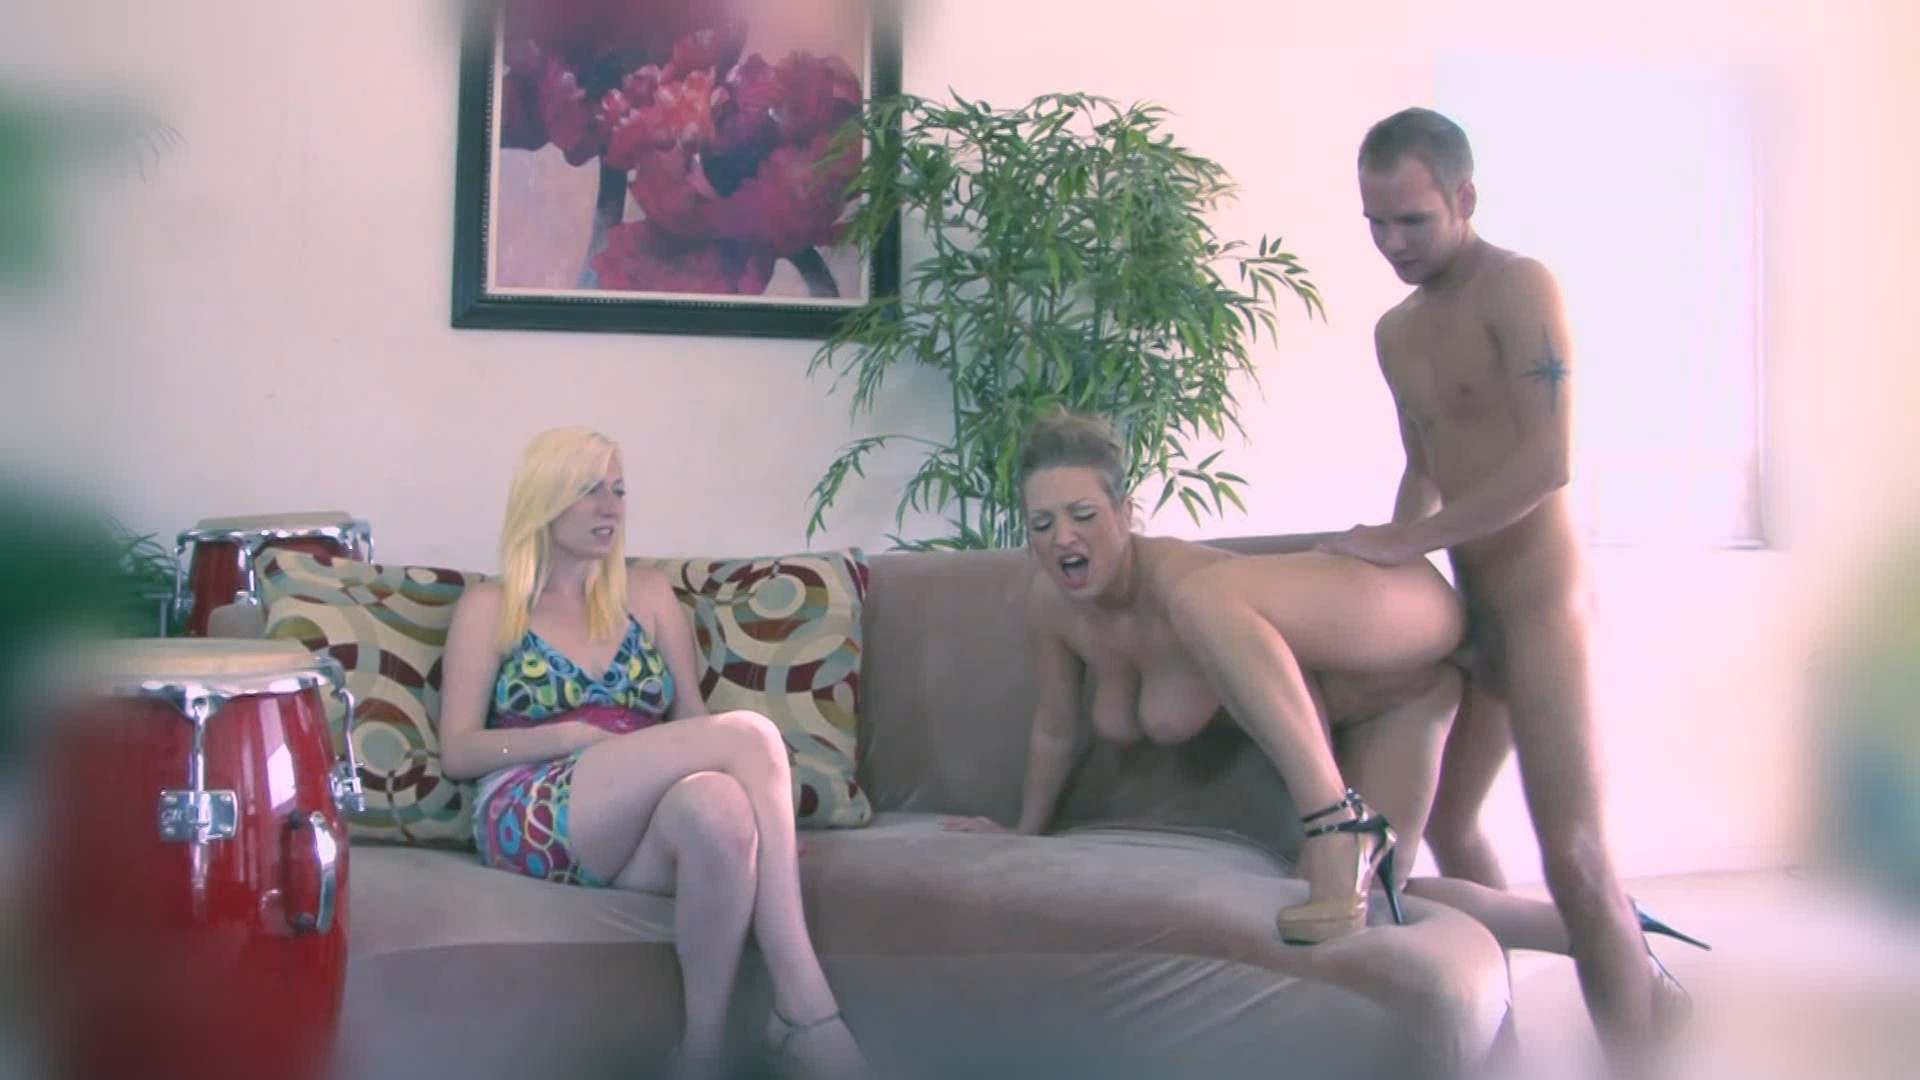 Assfucking Porn Tube my wife caught me assfucking her mother 3 kelly leigh